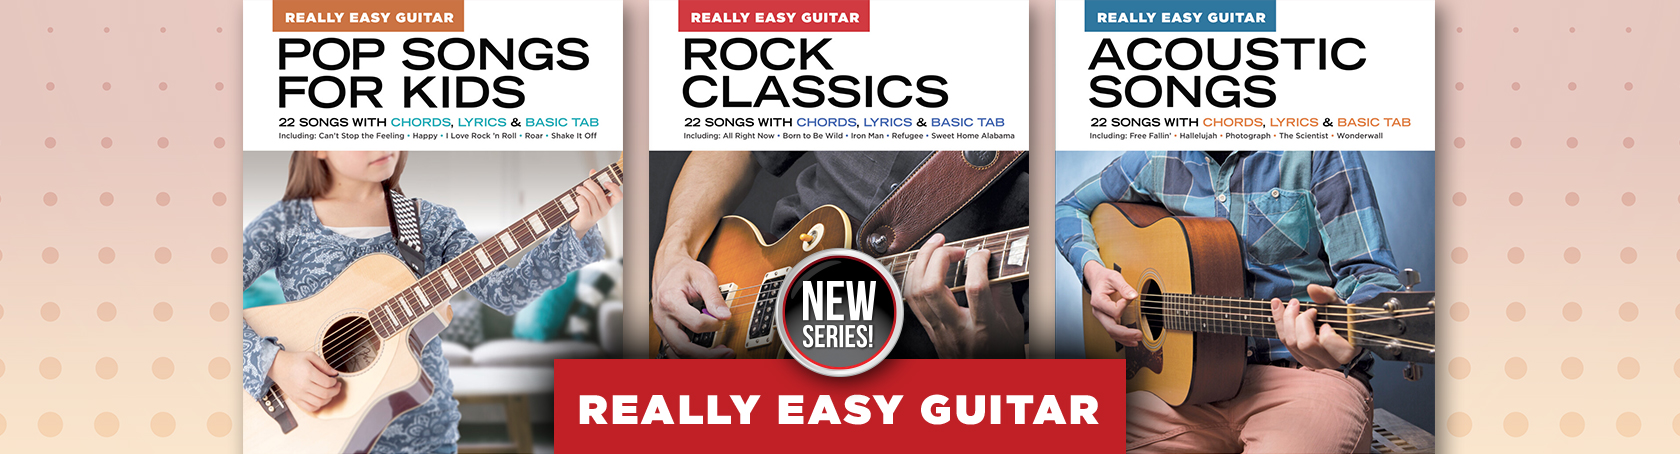 Really Easy Guitar - New Series!